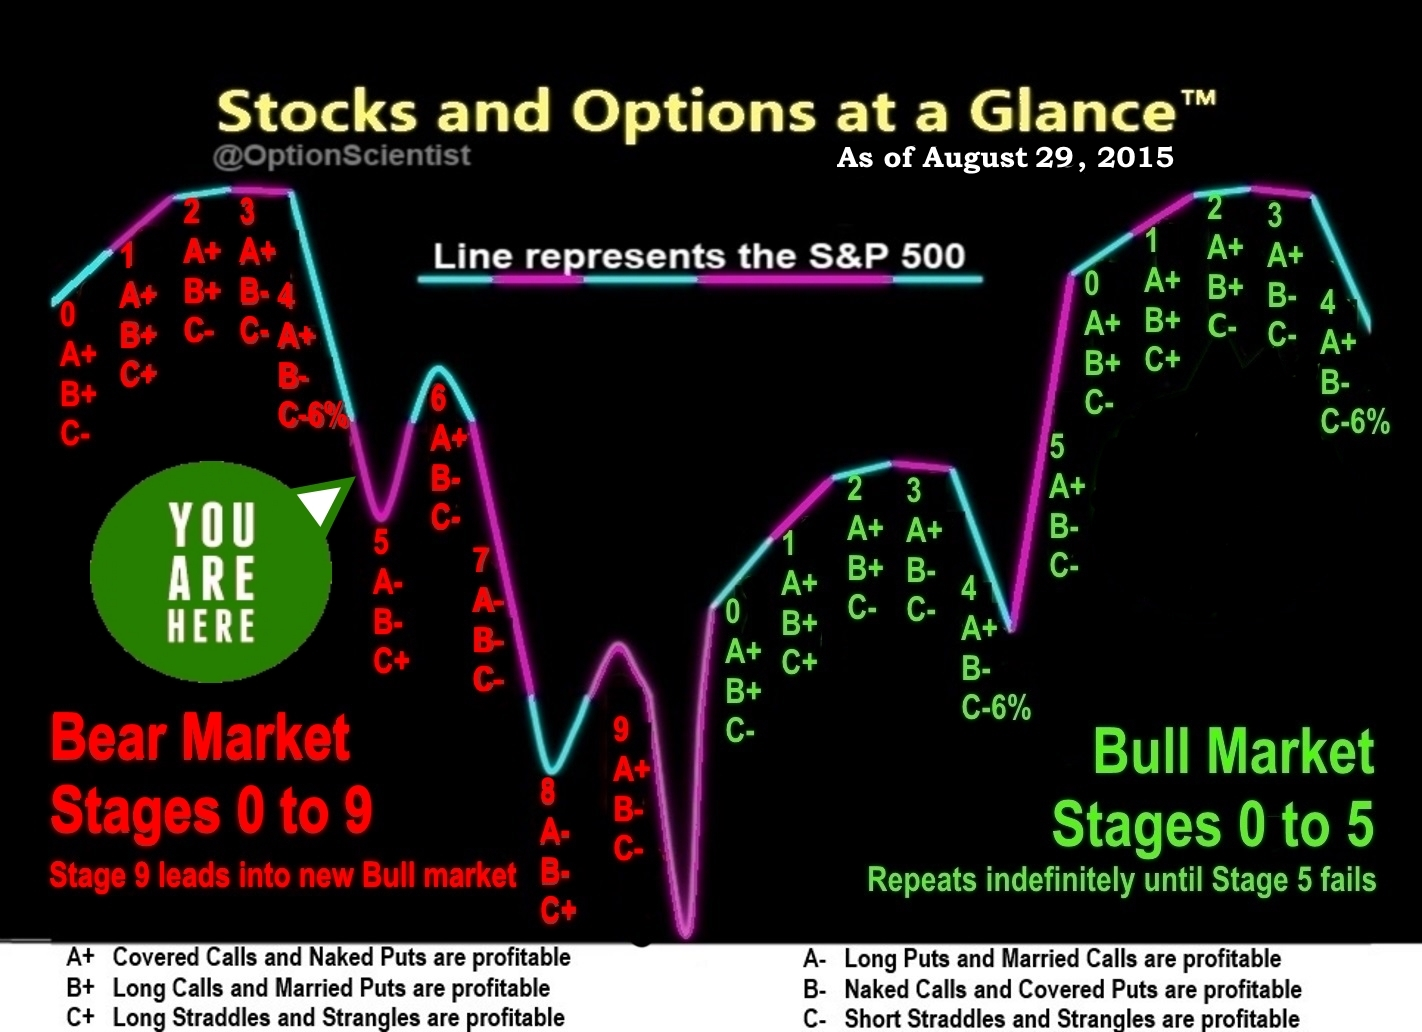 Stocks and Options at a Glance 08-29-15